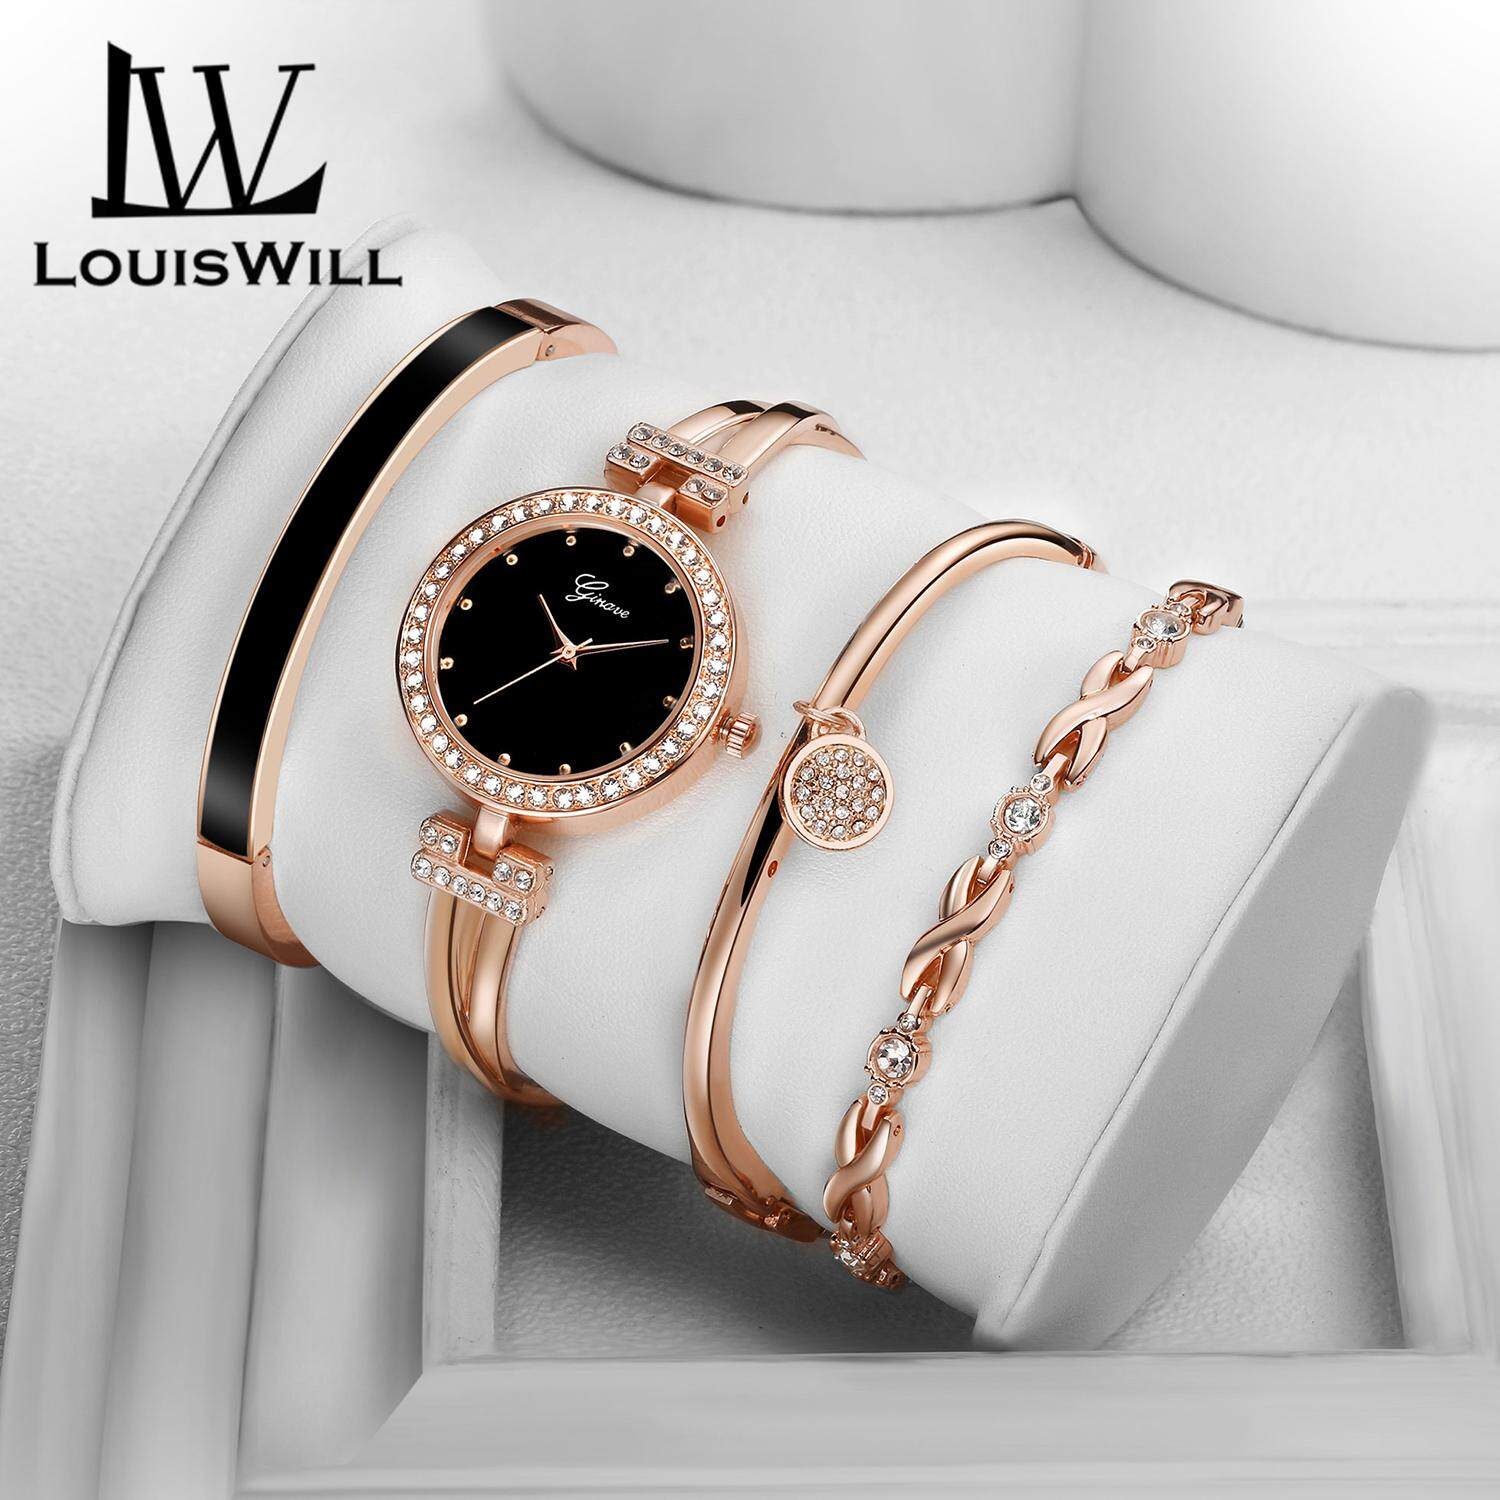 LouisWill Women Fashion Watch Casual Watches Women Wristwatch 4 in 1 Watches Quartz Alloy Plating Watches Female Watches with Gift Box Malaysia